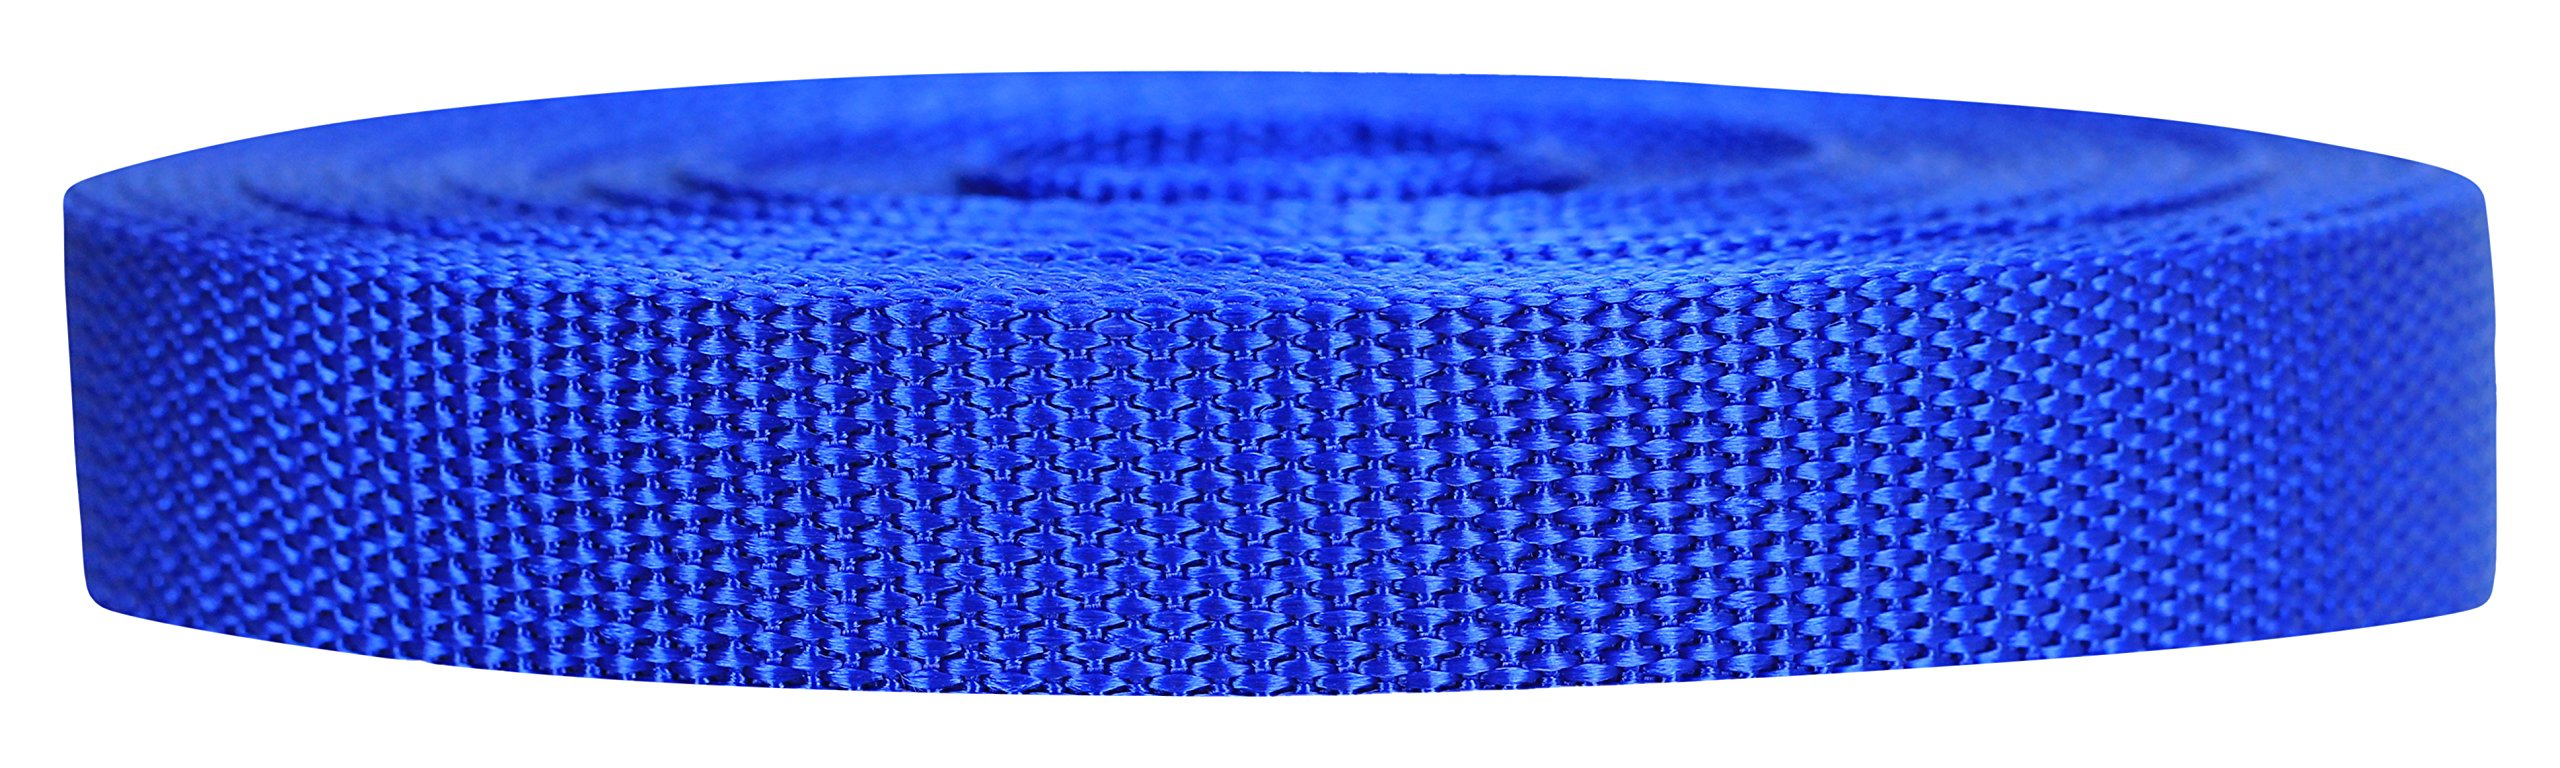 Strapworks Heavyweight Polypropylene Webbing - Heavy Duty Poly Strapping for Outdoor DIY Gear Repair, 3/4 Inch x 25 Yards, Royal Blue by Strapworks